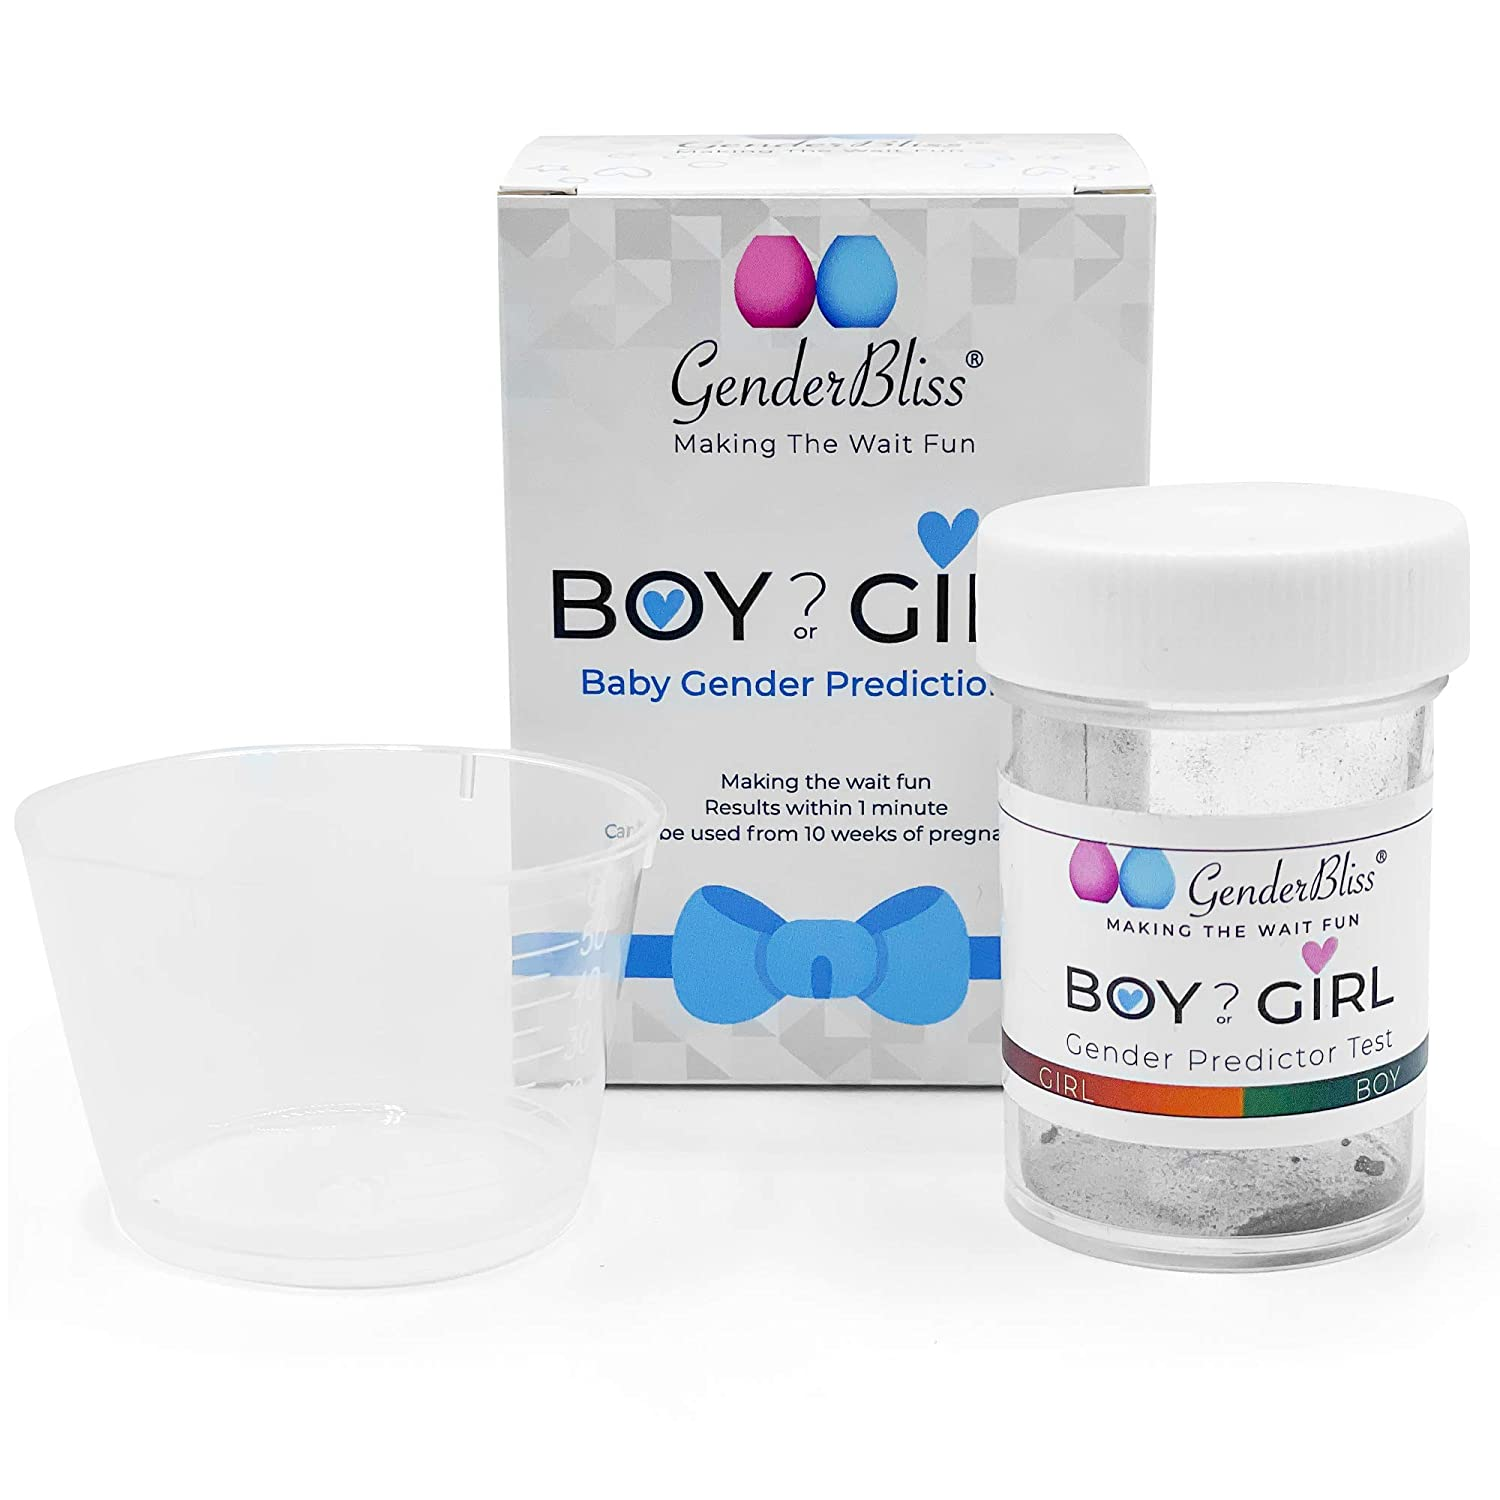 GenderBliss Gender Prediction Test Kit - Early Pregnancy Boy or Girl Gender Reveal Home Test - Non-invasive Safe for Mother and Baby. Find out your babies gender as early as 10 weeks!